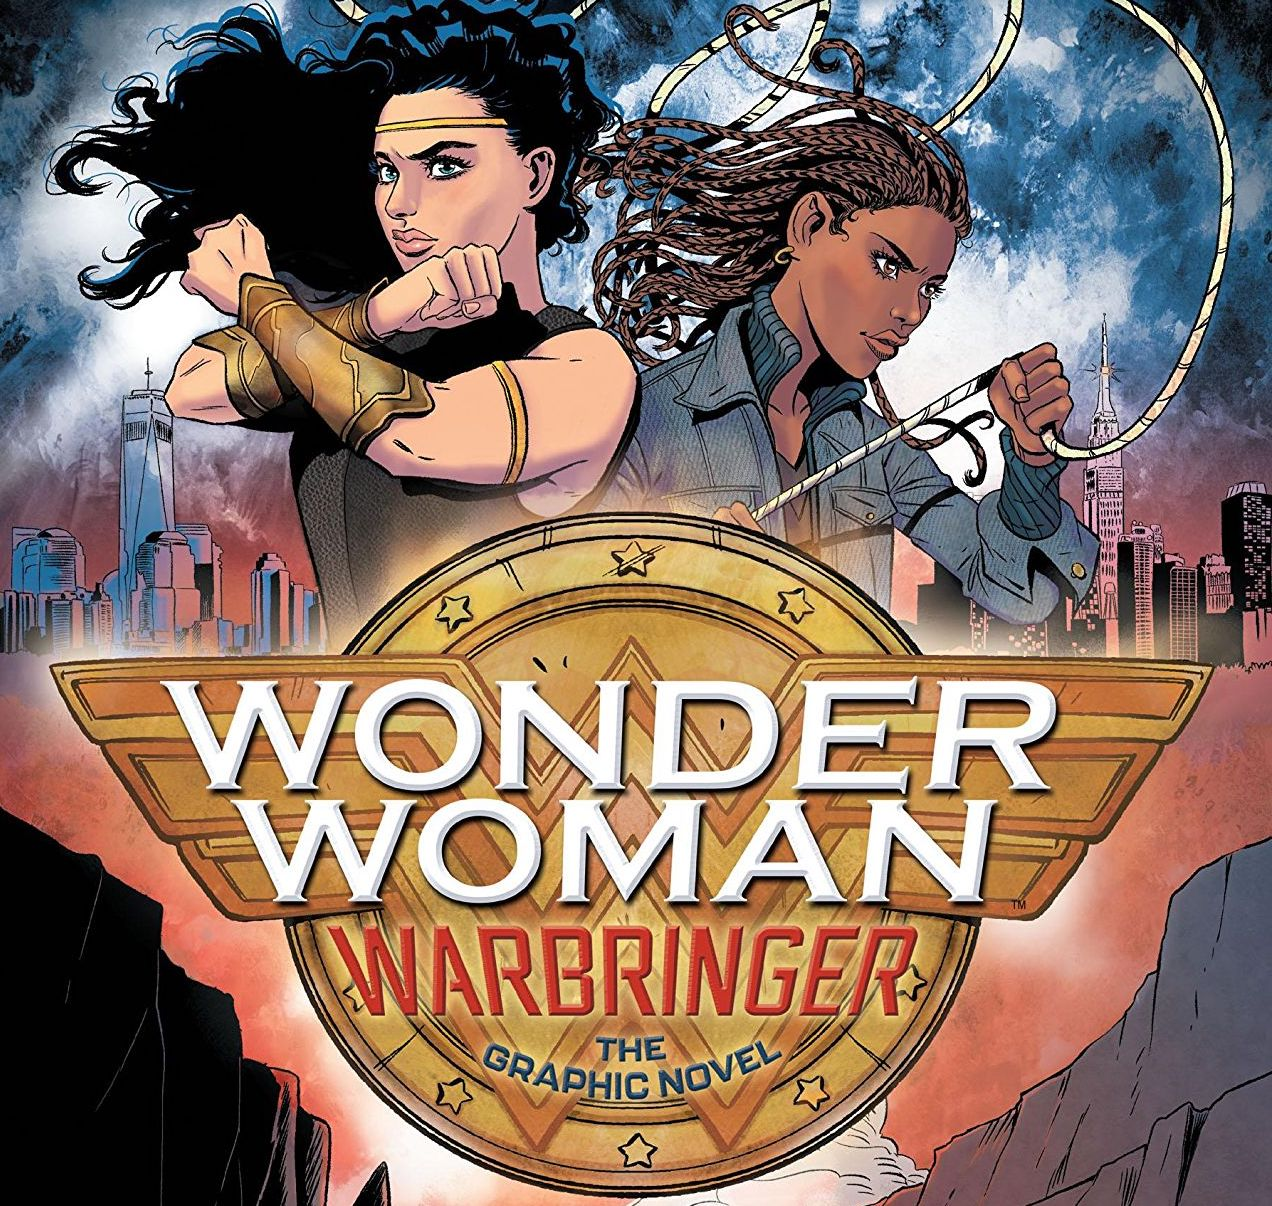 Wonder Woman: Warbringer Graphic Novel review